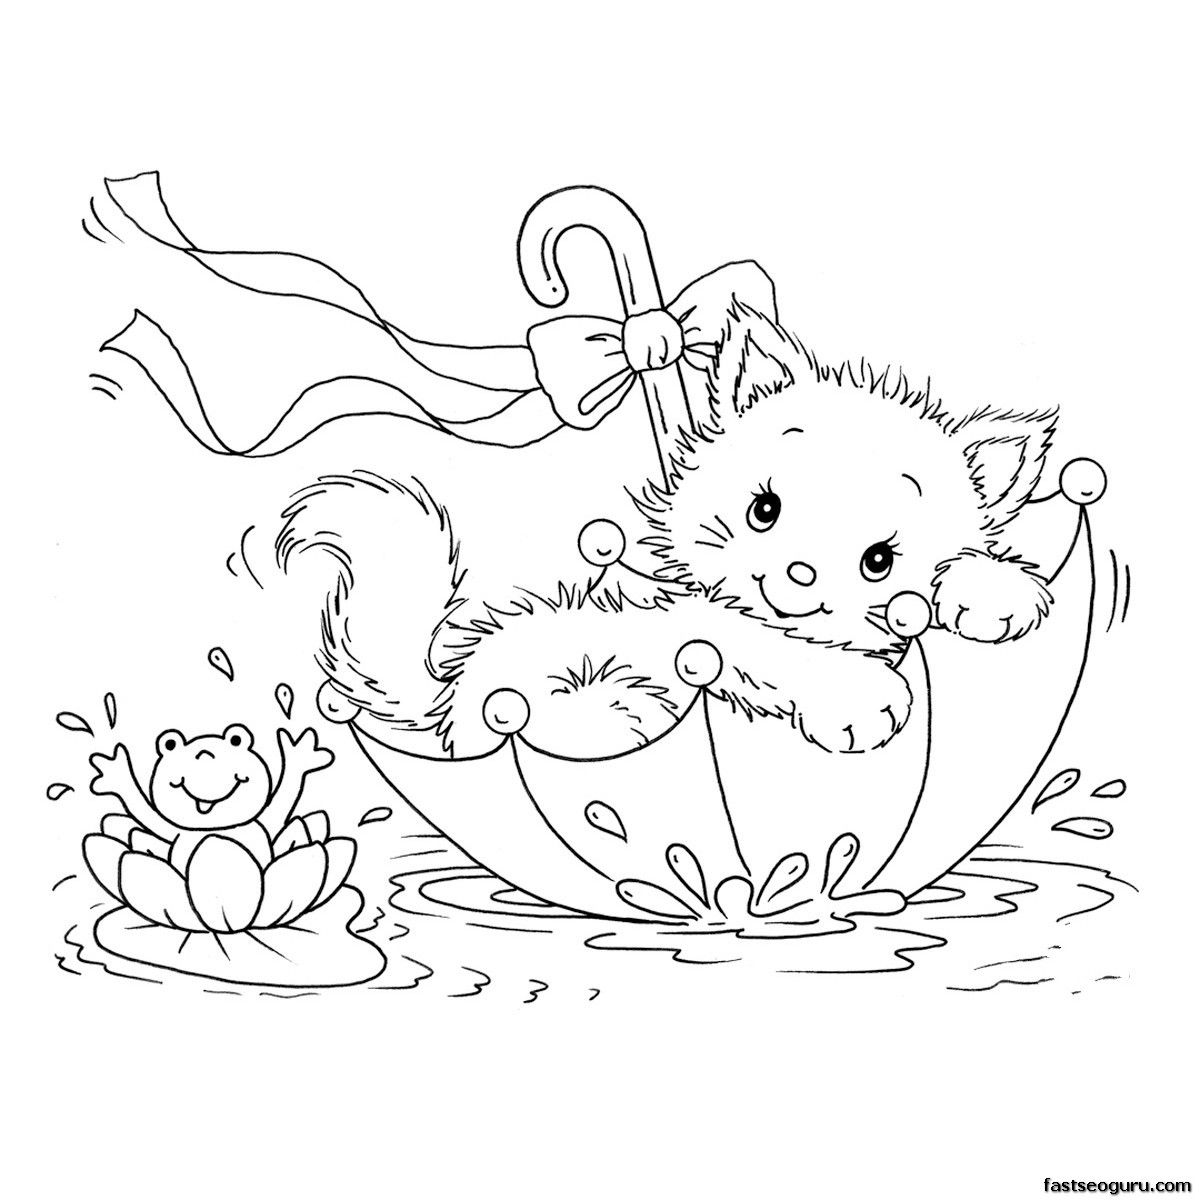 Spring animal coloring pages - Free Cute Frog Coloring Pages Cute Frog Coloring Page 1092 Free